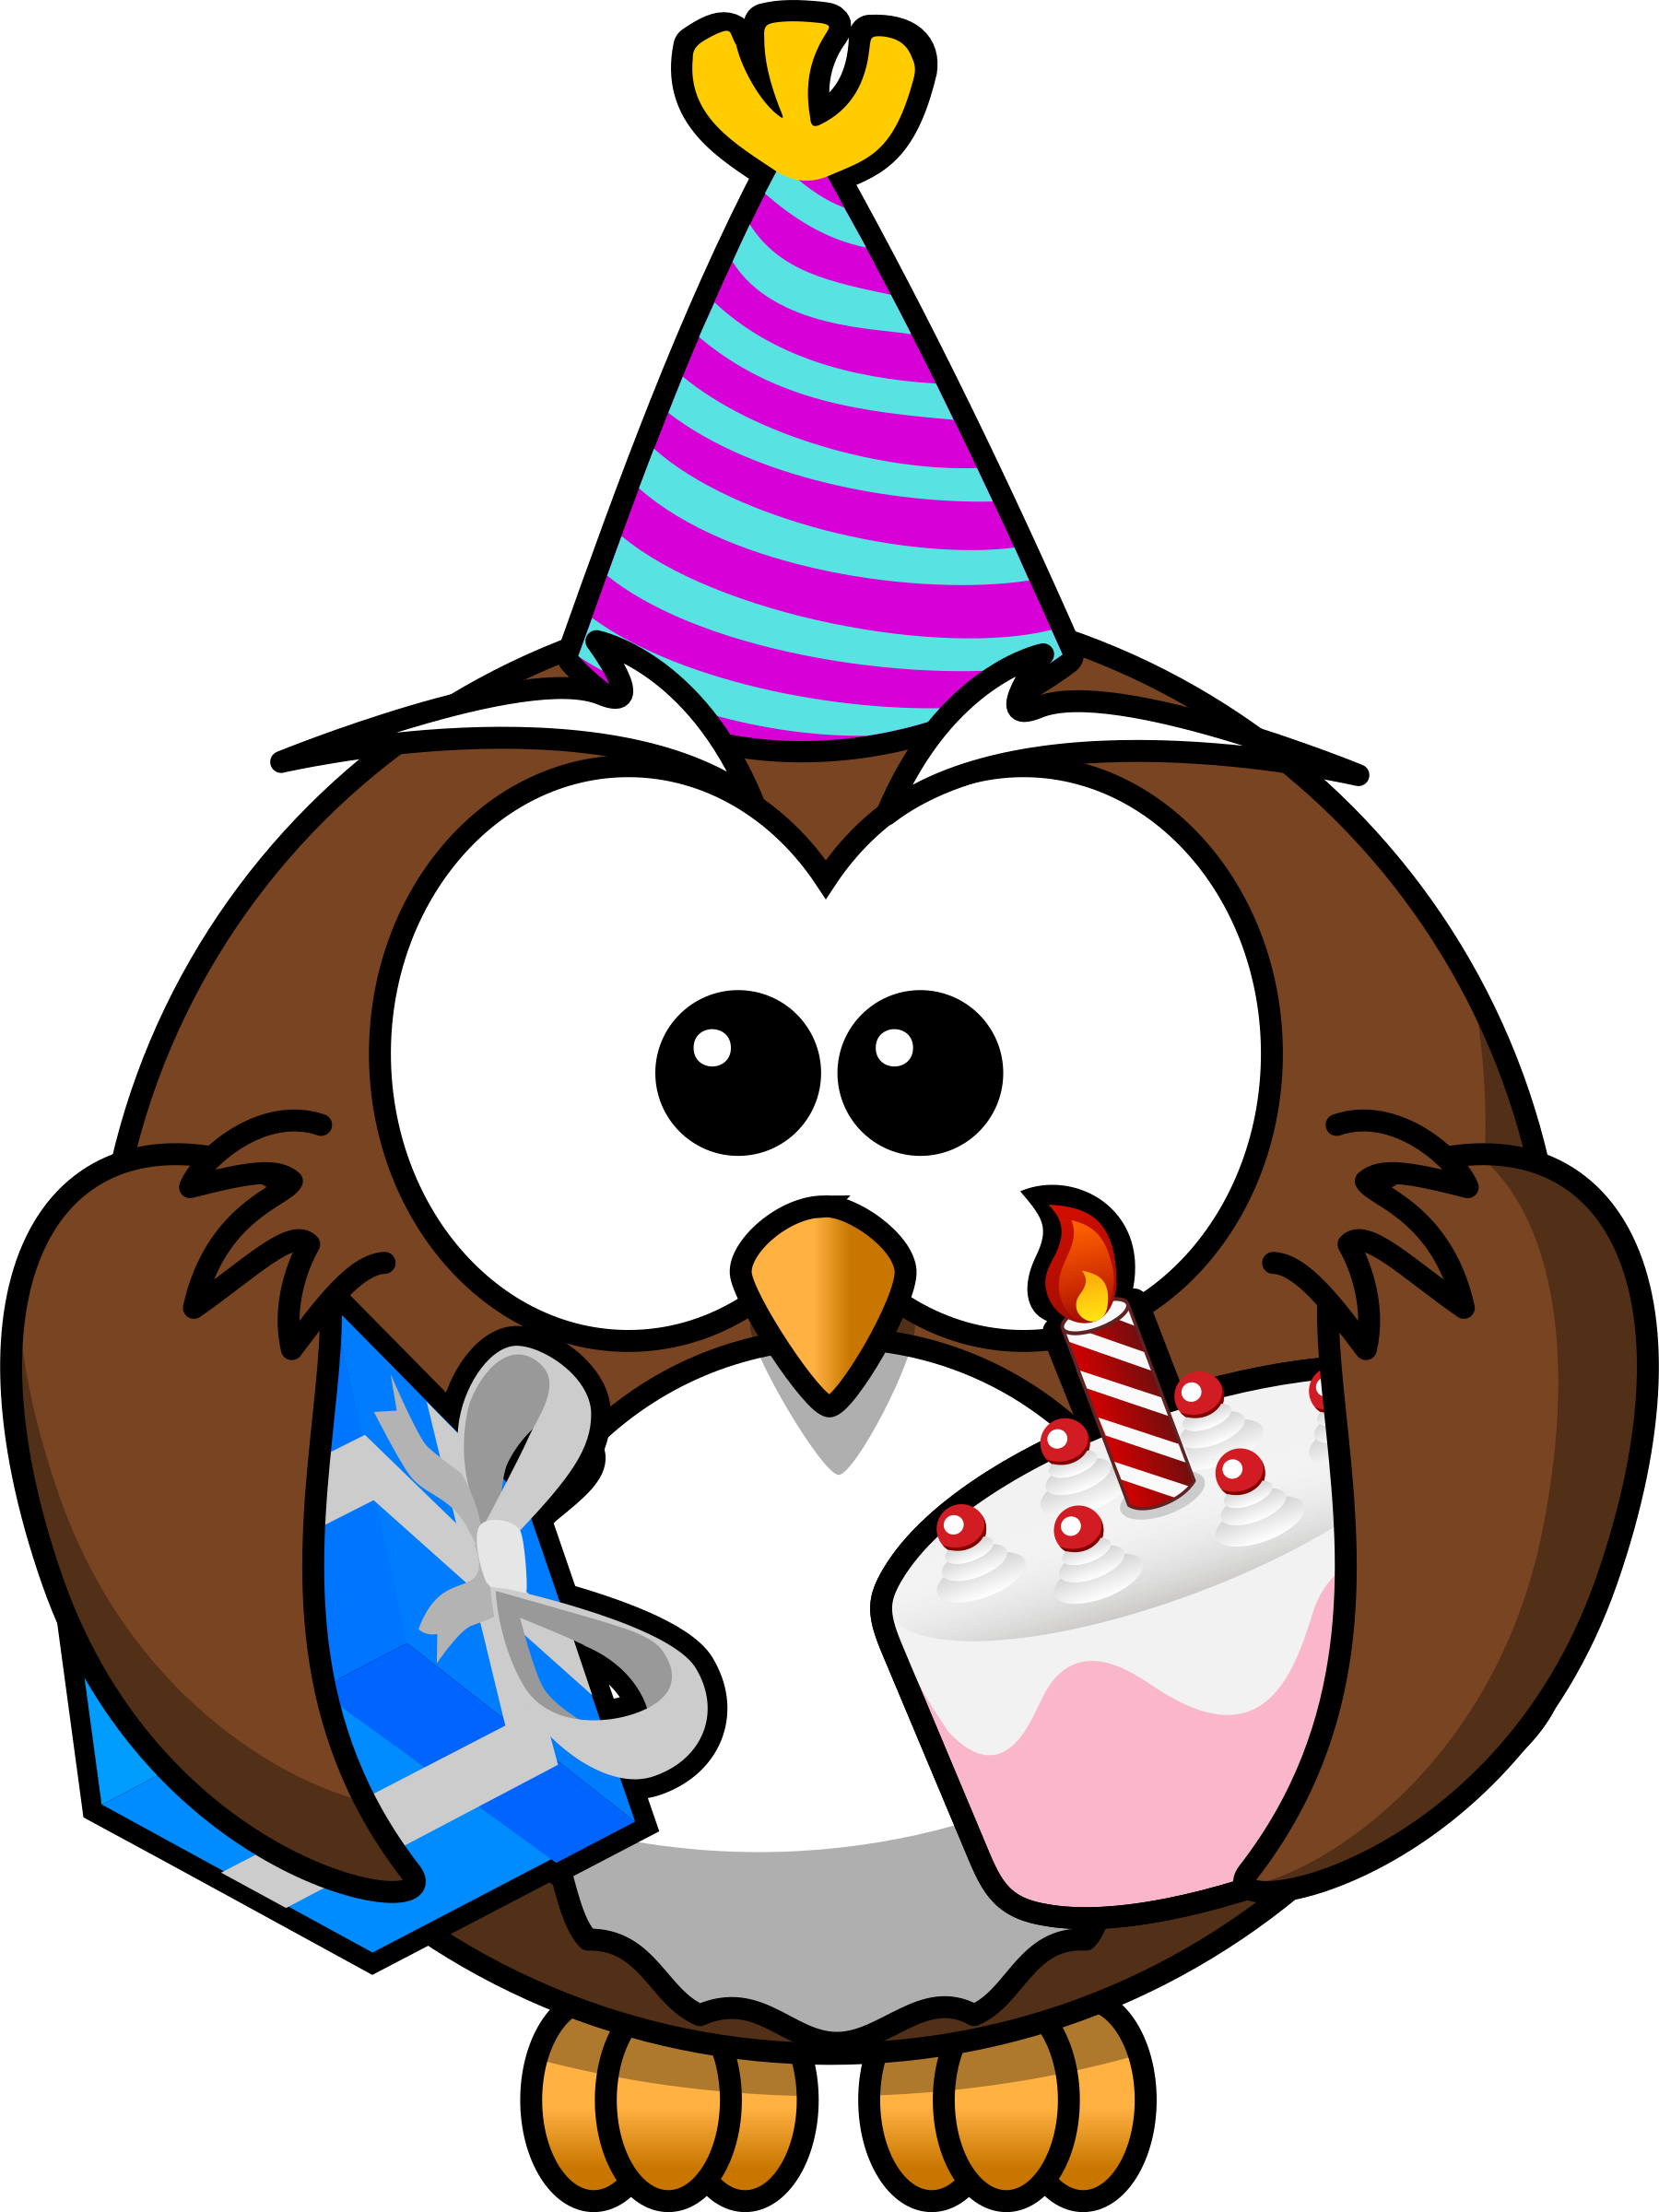 Celebration let party clip art free clipart images 2 clipartcow 3.